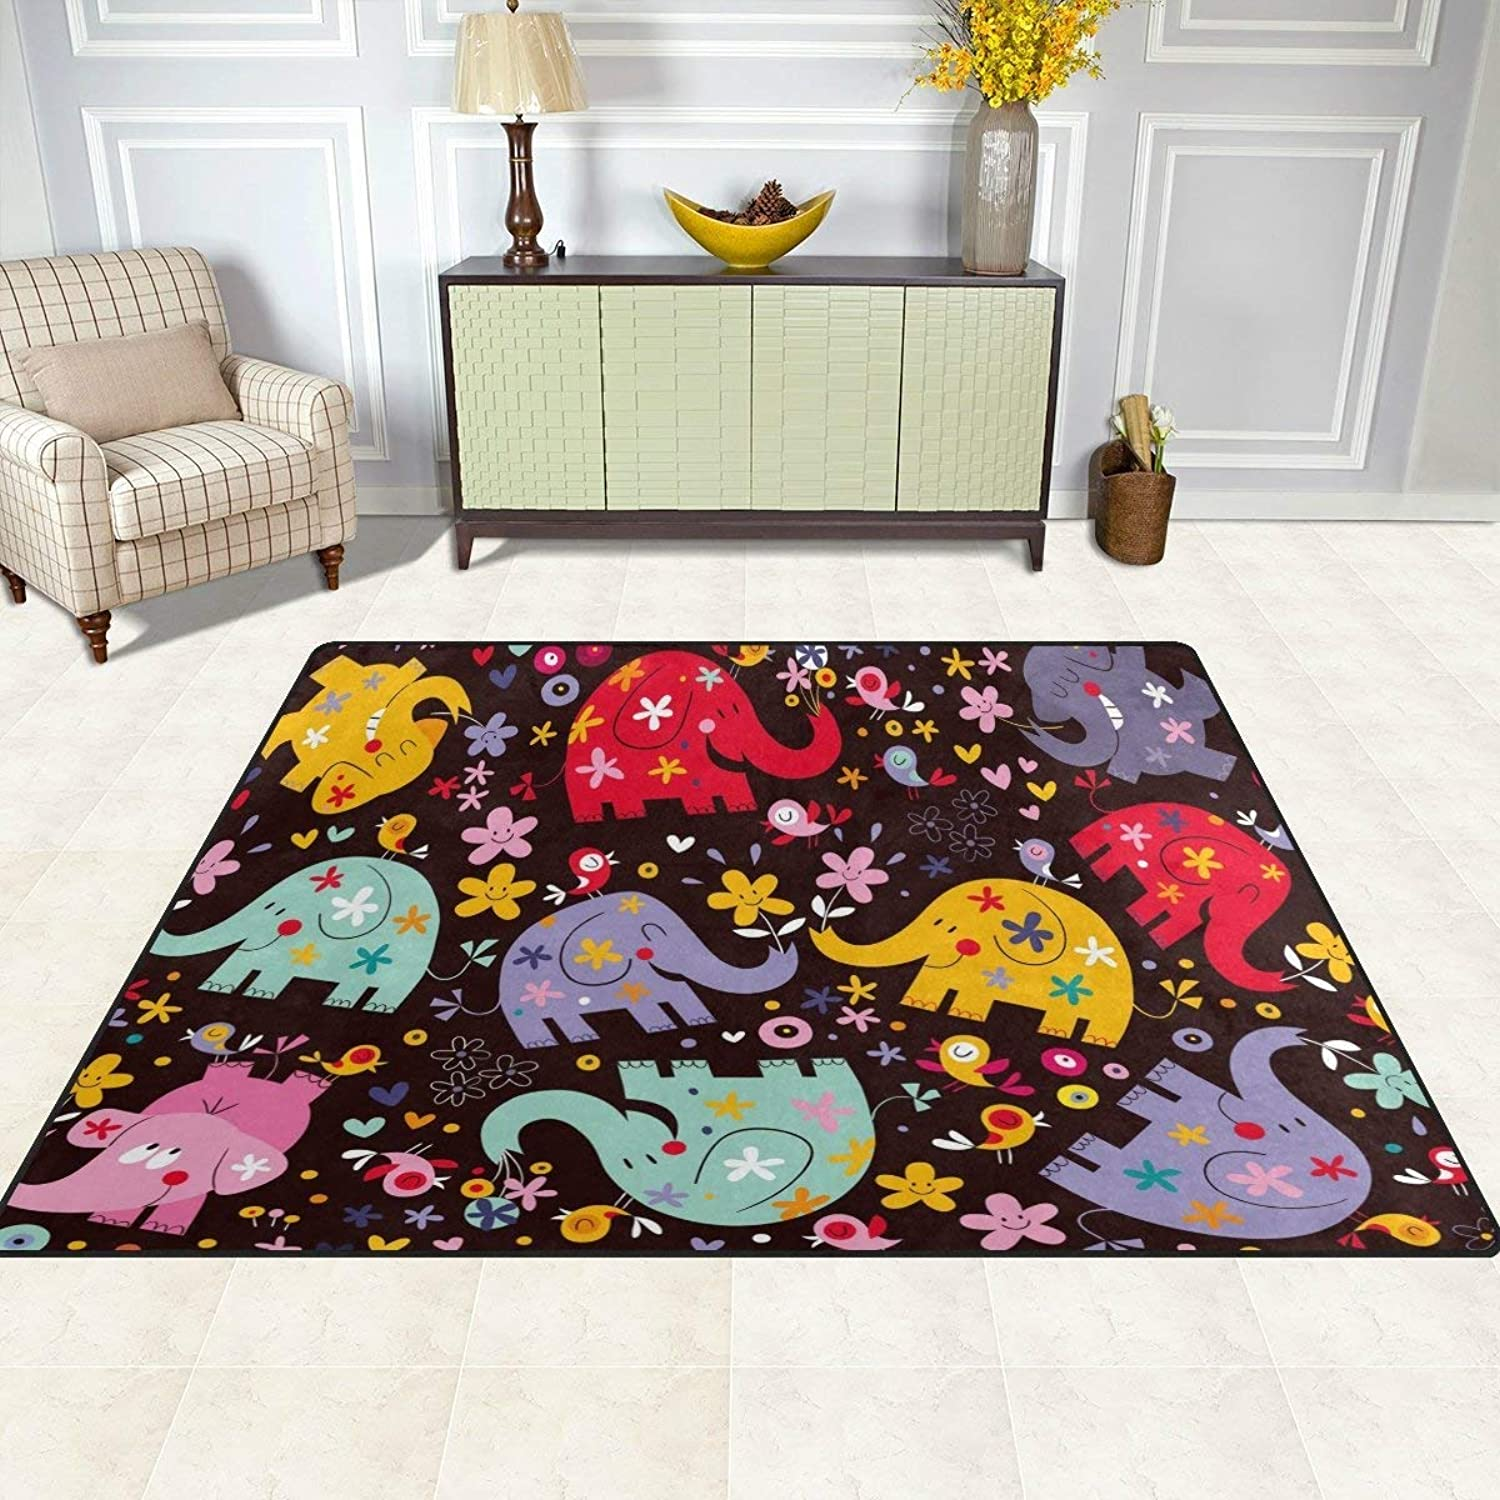 Area Rugs Mat Carpet 5'x7', Cute Animal Elephant Floral Bird Pattern Polyester Non-Slip Living Room Dining Bedroom Carpet Entrance Floor Mat Home Decor